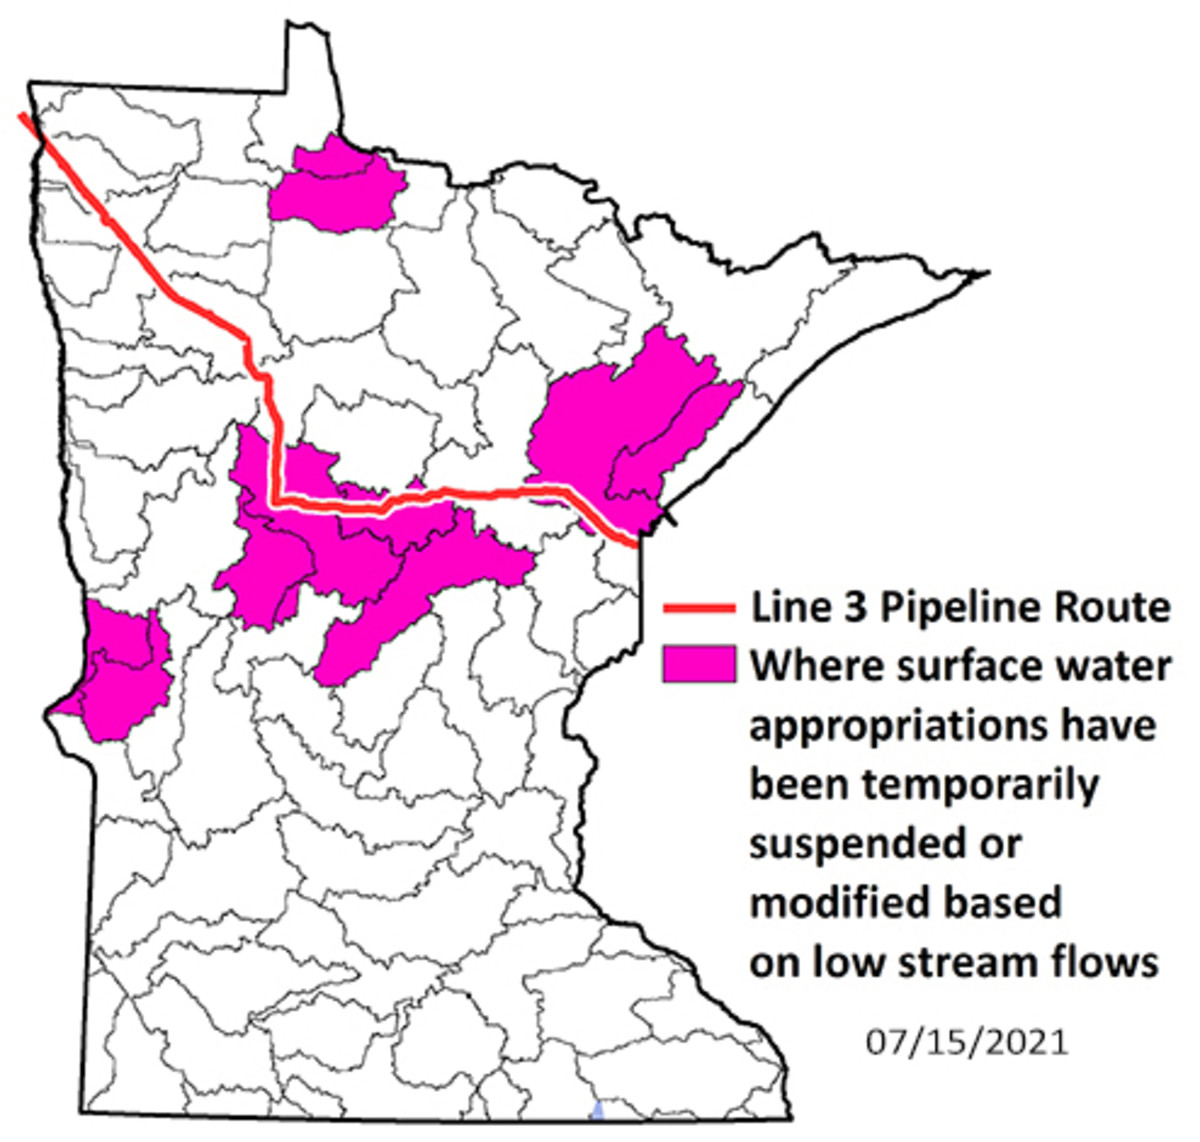 Minnesota DNR - Line 3 route watershed restrictions July 15 2021